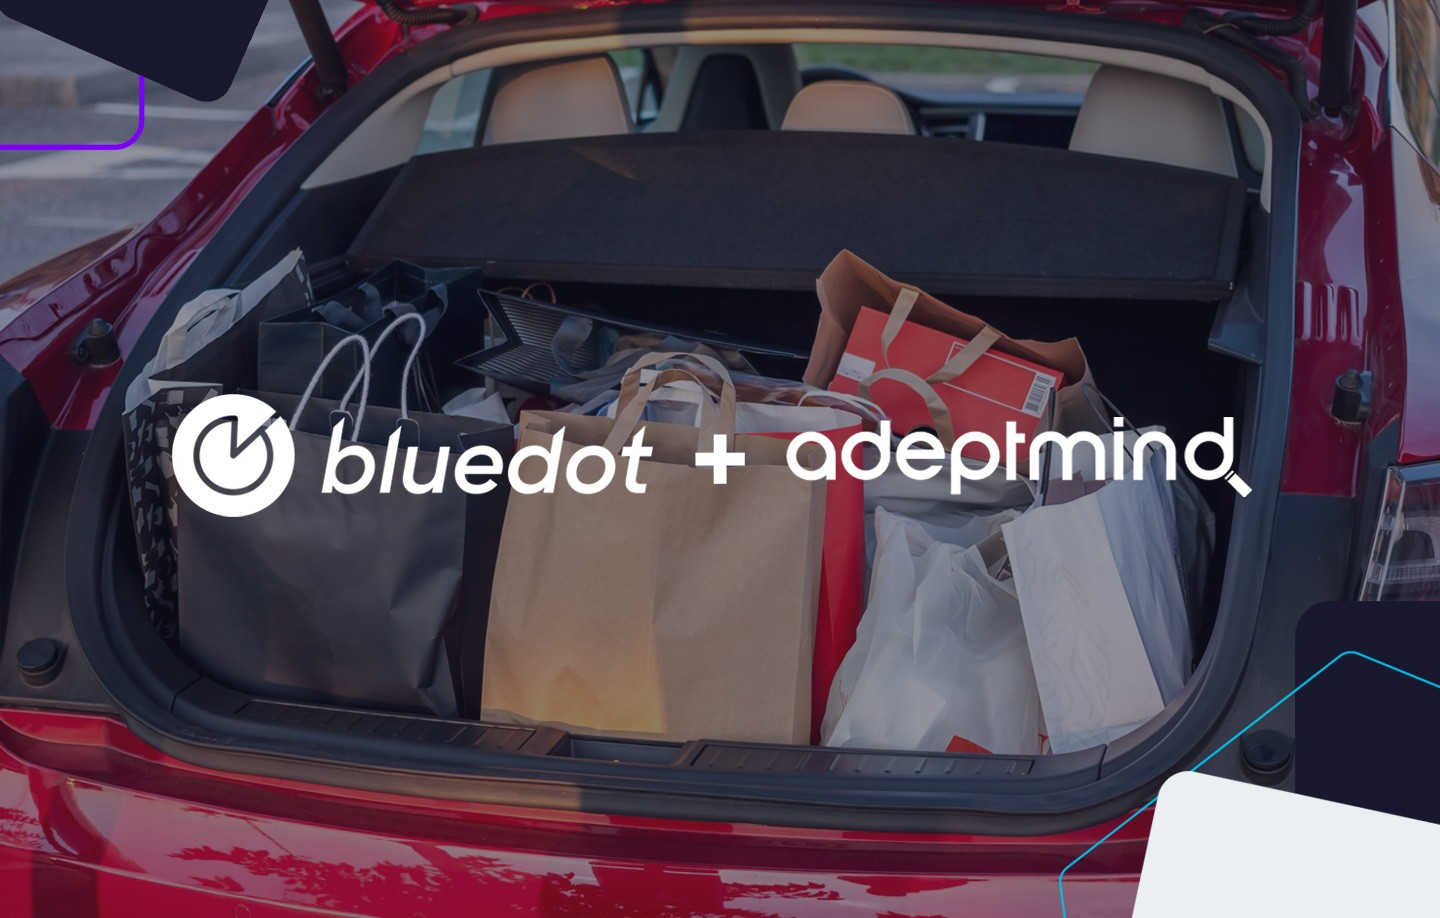 Bluedot & Adeptmind Redefine Mall Shopping and Transform Curbside Pickup Into a First Class Arrival Experience - Featured Image